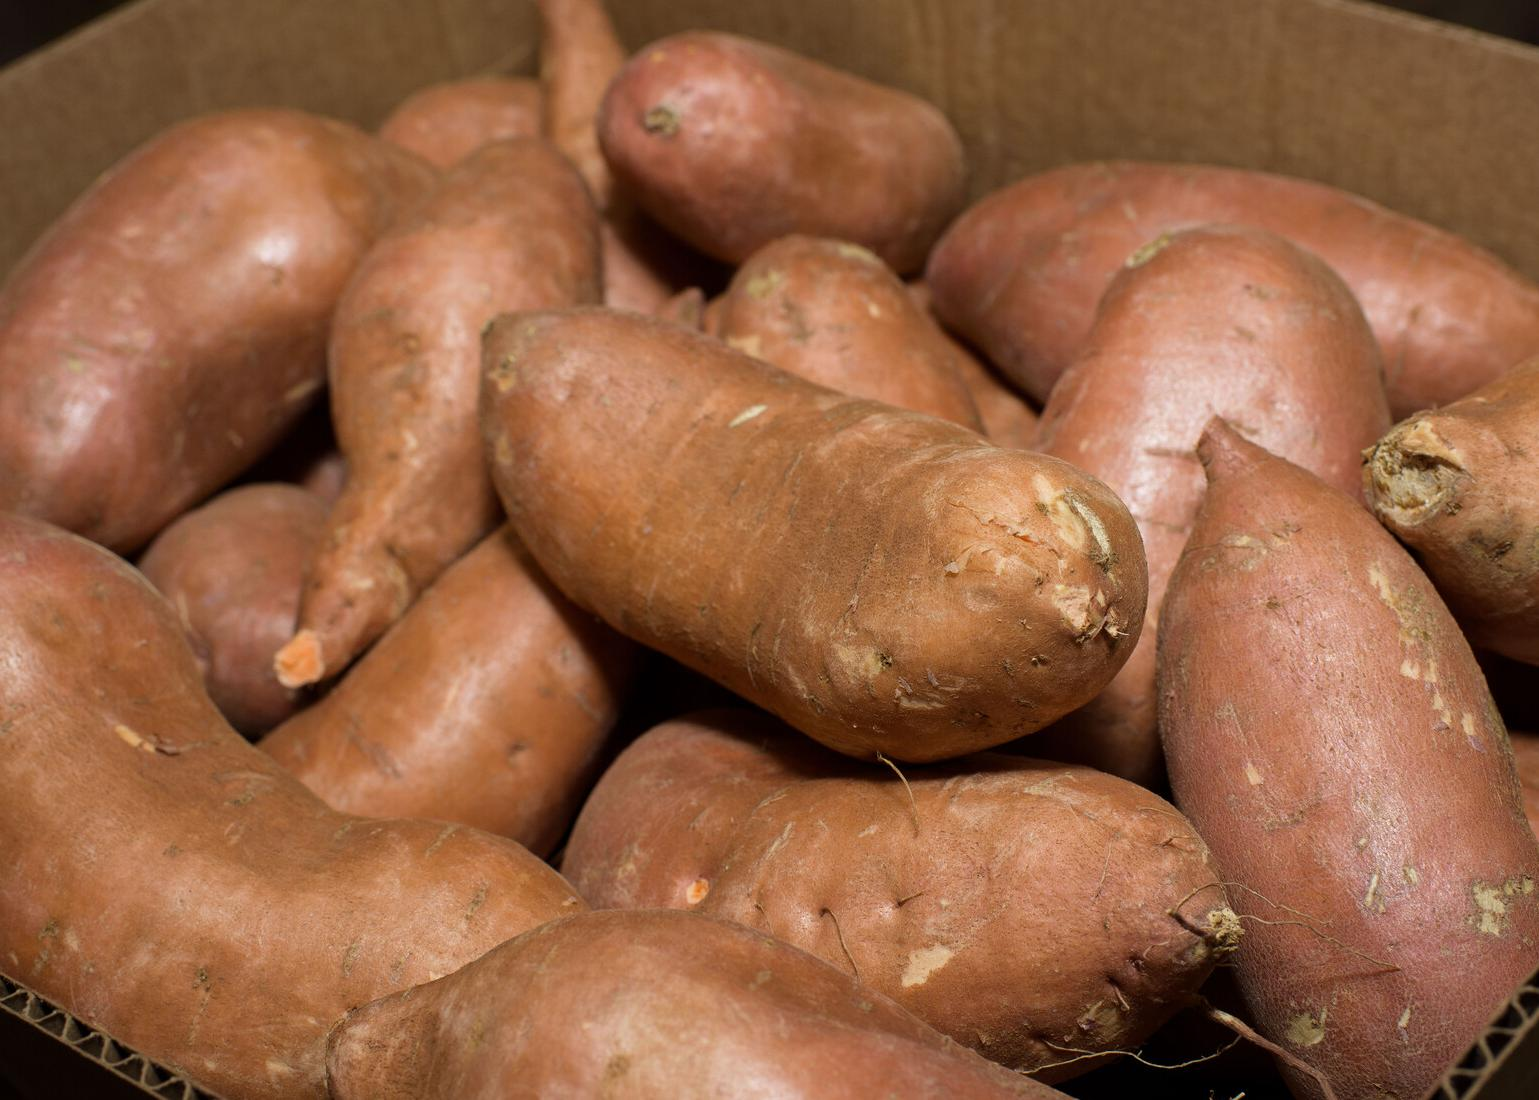 Multiple sweet potatoes in a box.